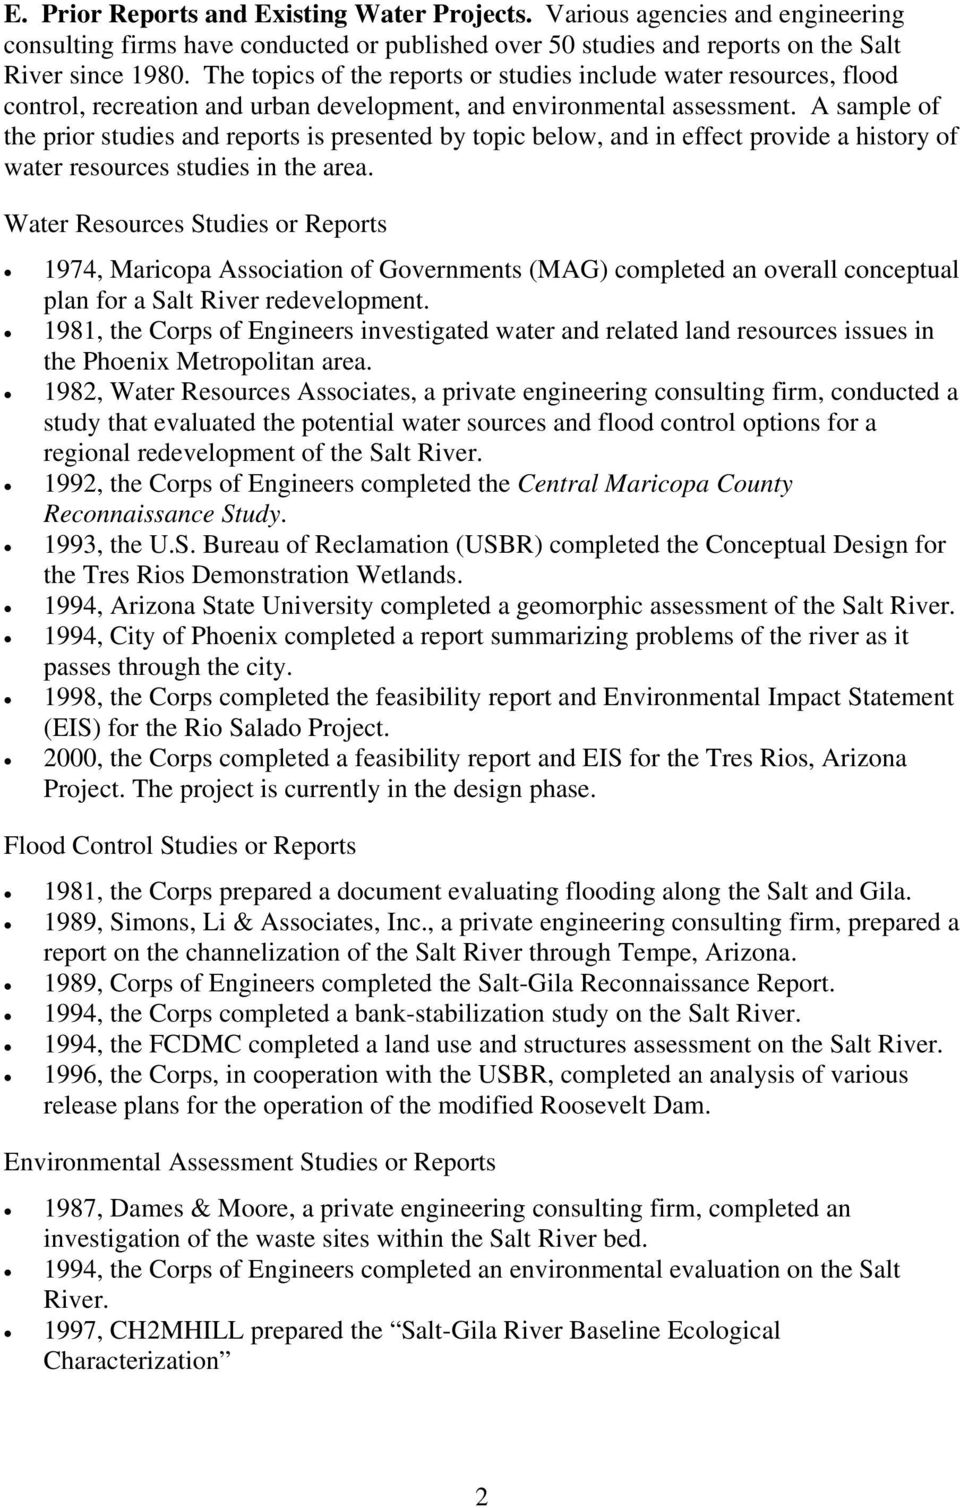 A sample of the prior studies and reports is presented by topic below, and in effect provide a history of water resources studies in the area.